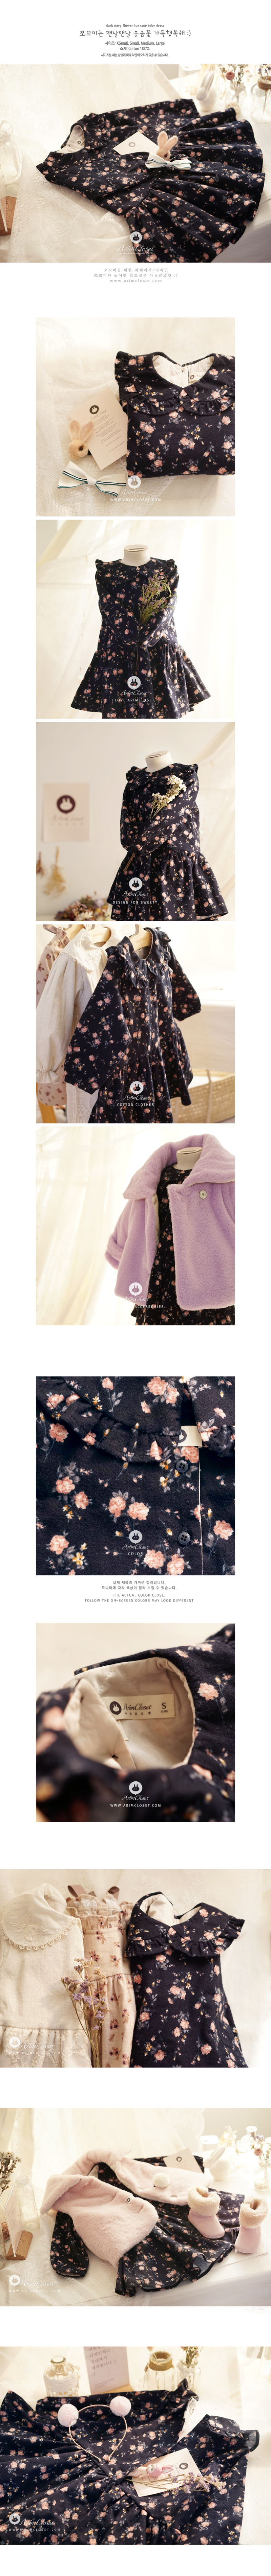 ARIM CLOSET - Korean Children Fashion - #Kfashion4kids - Dark Navy Flower Warm Dress - 2